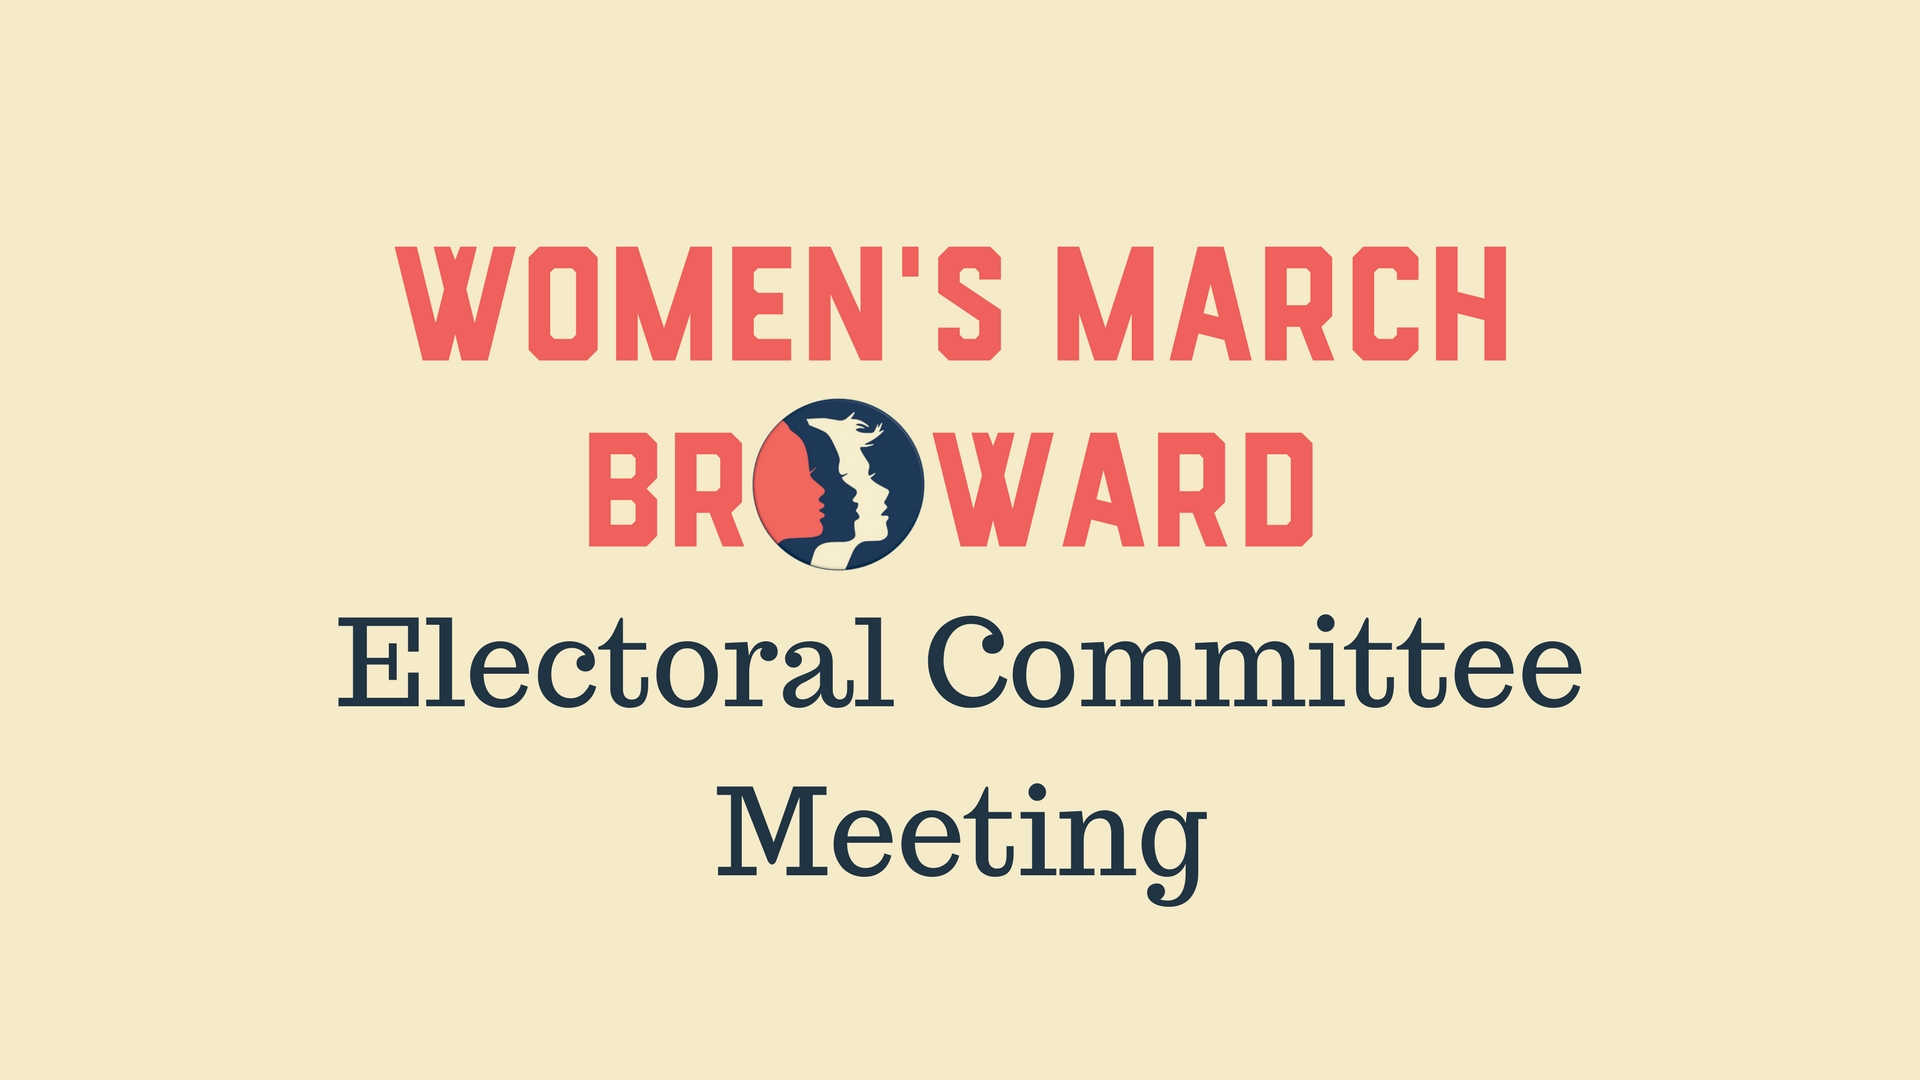 6-6-2018: Electoral Committee Meeting - Please join the Electoral Committee to discuss hosting candidate forums ahead of the primaries.The Electoral Committee works to track candidates and races affecting Broward County and to create opportunities for constituents to meet candidates. Please join us!